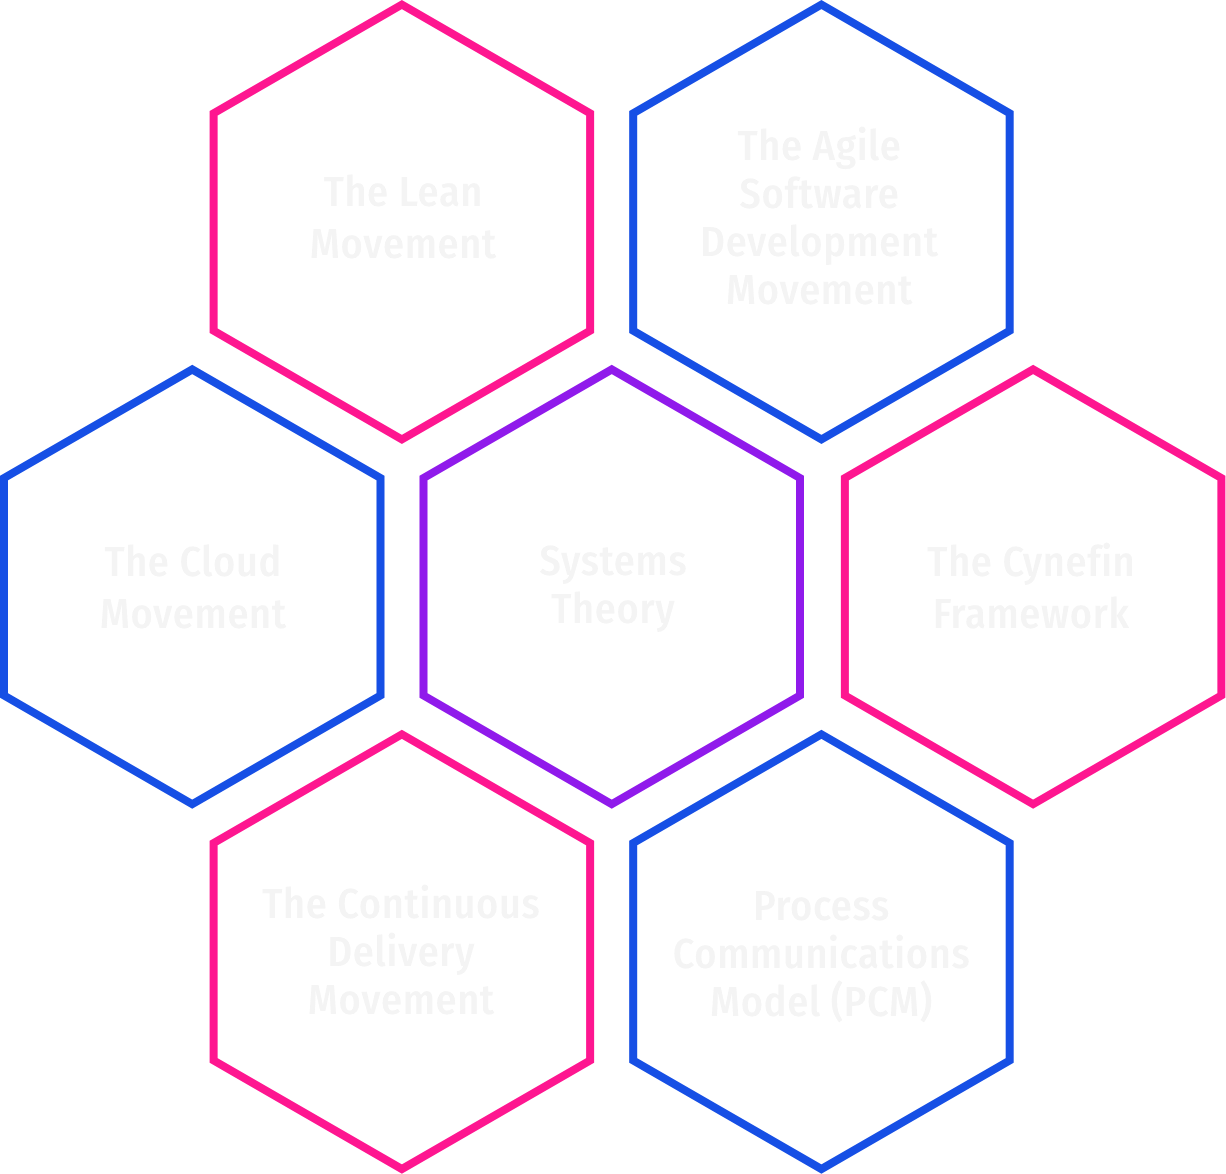 The Lean Movement, The Agile Software Development Movement, The Cloud Movement, Systems Theory, The Cynefin Framework, The Continuous Delivery Movement, Process Communications Model (PCM)